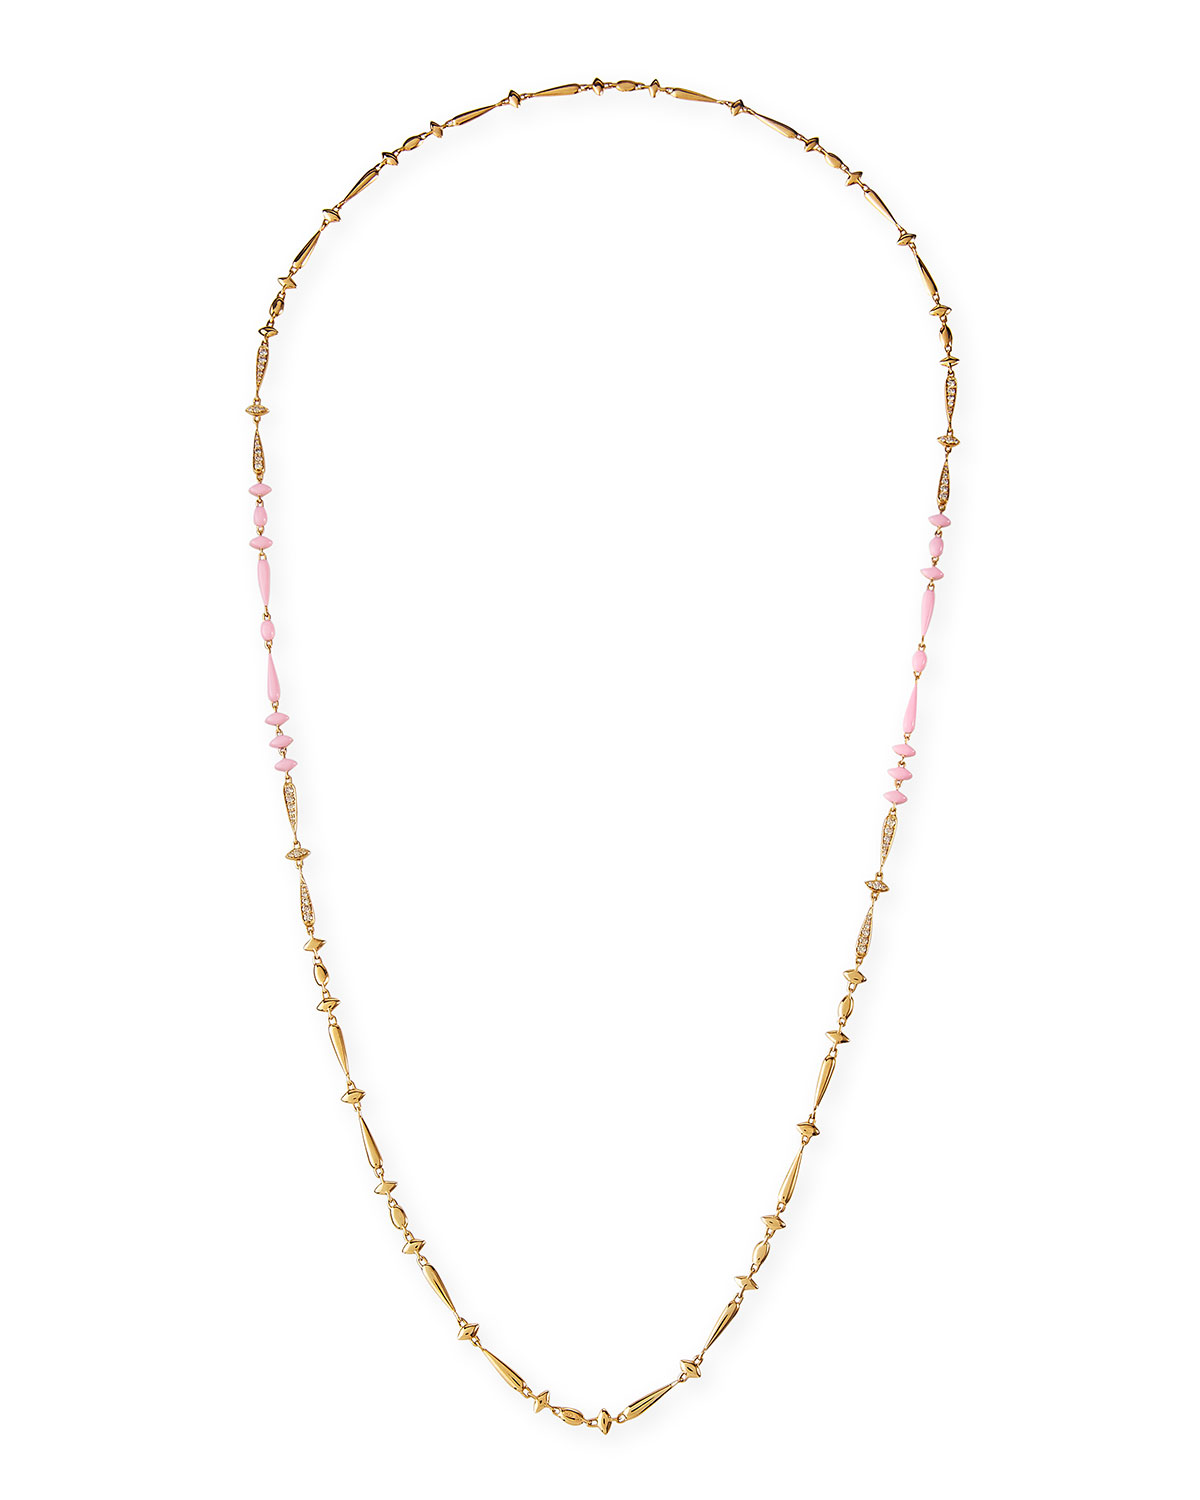 Brown Diamond and Pink Ceramic Necklace